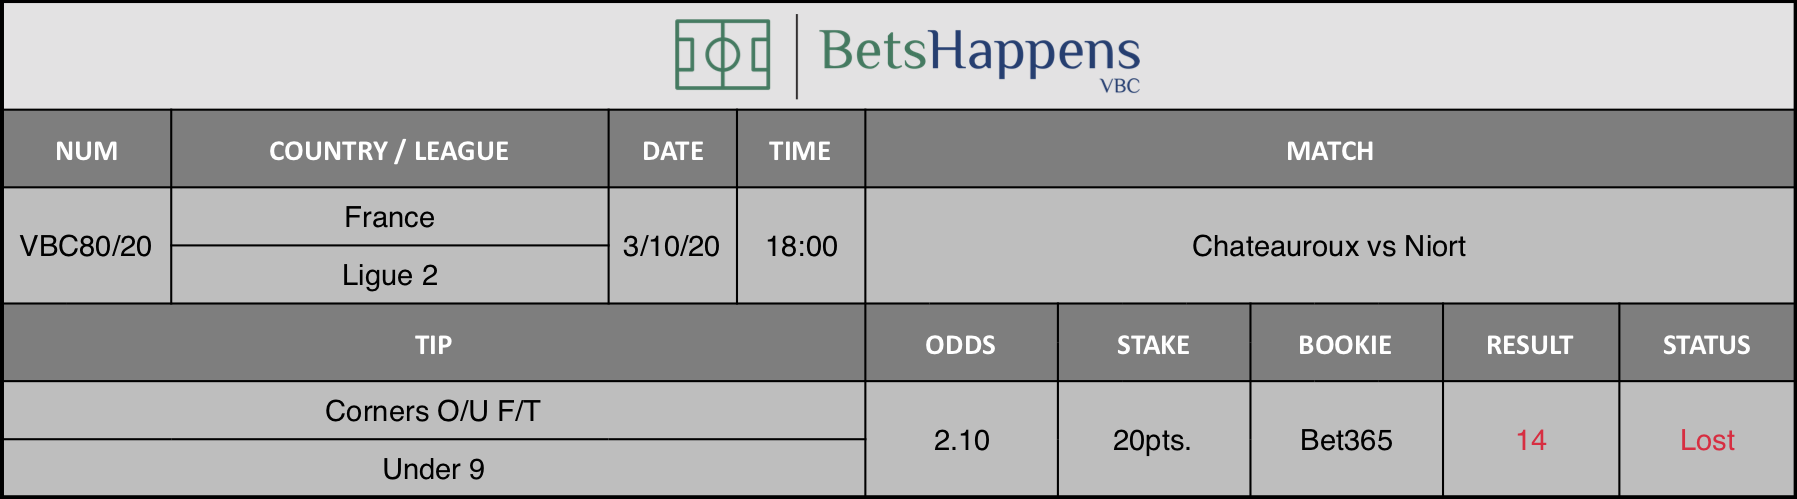 Results of our tip for the Chateauroux vs Niort match where Corners O / U F / T Under 9 is recommended.